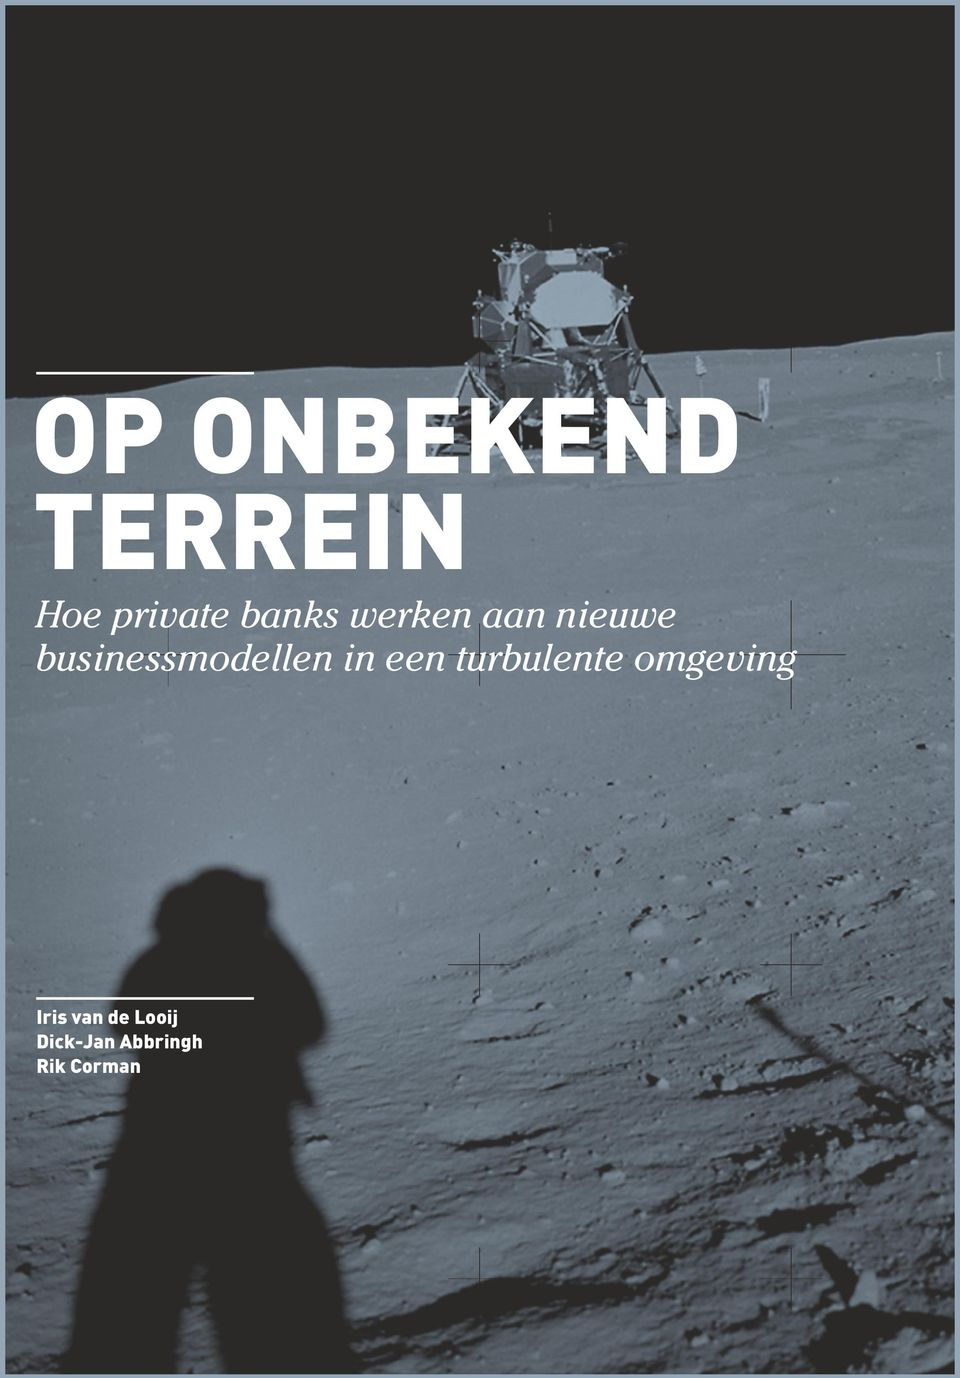 businessmodellen in een turbulente